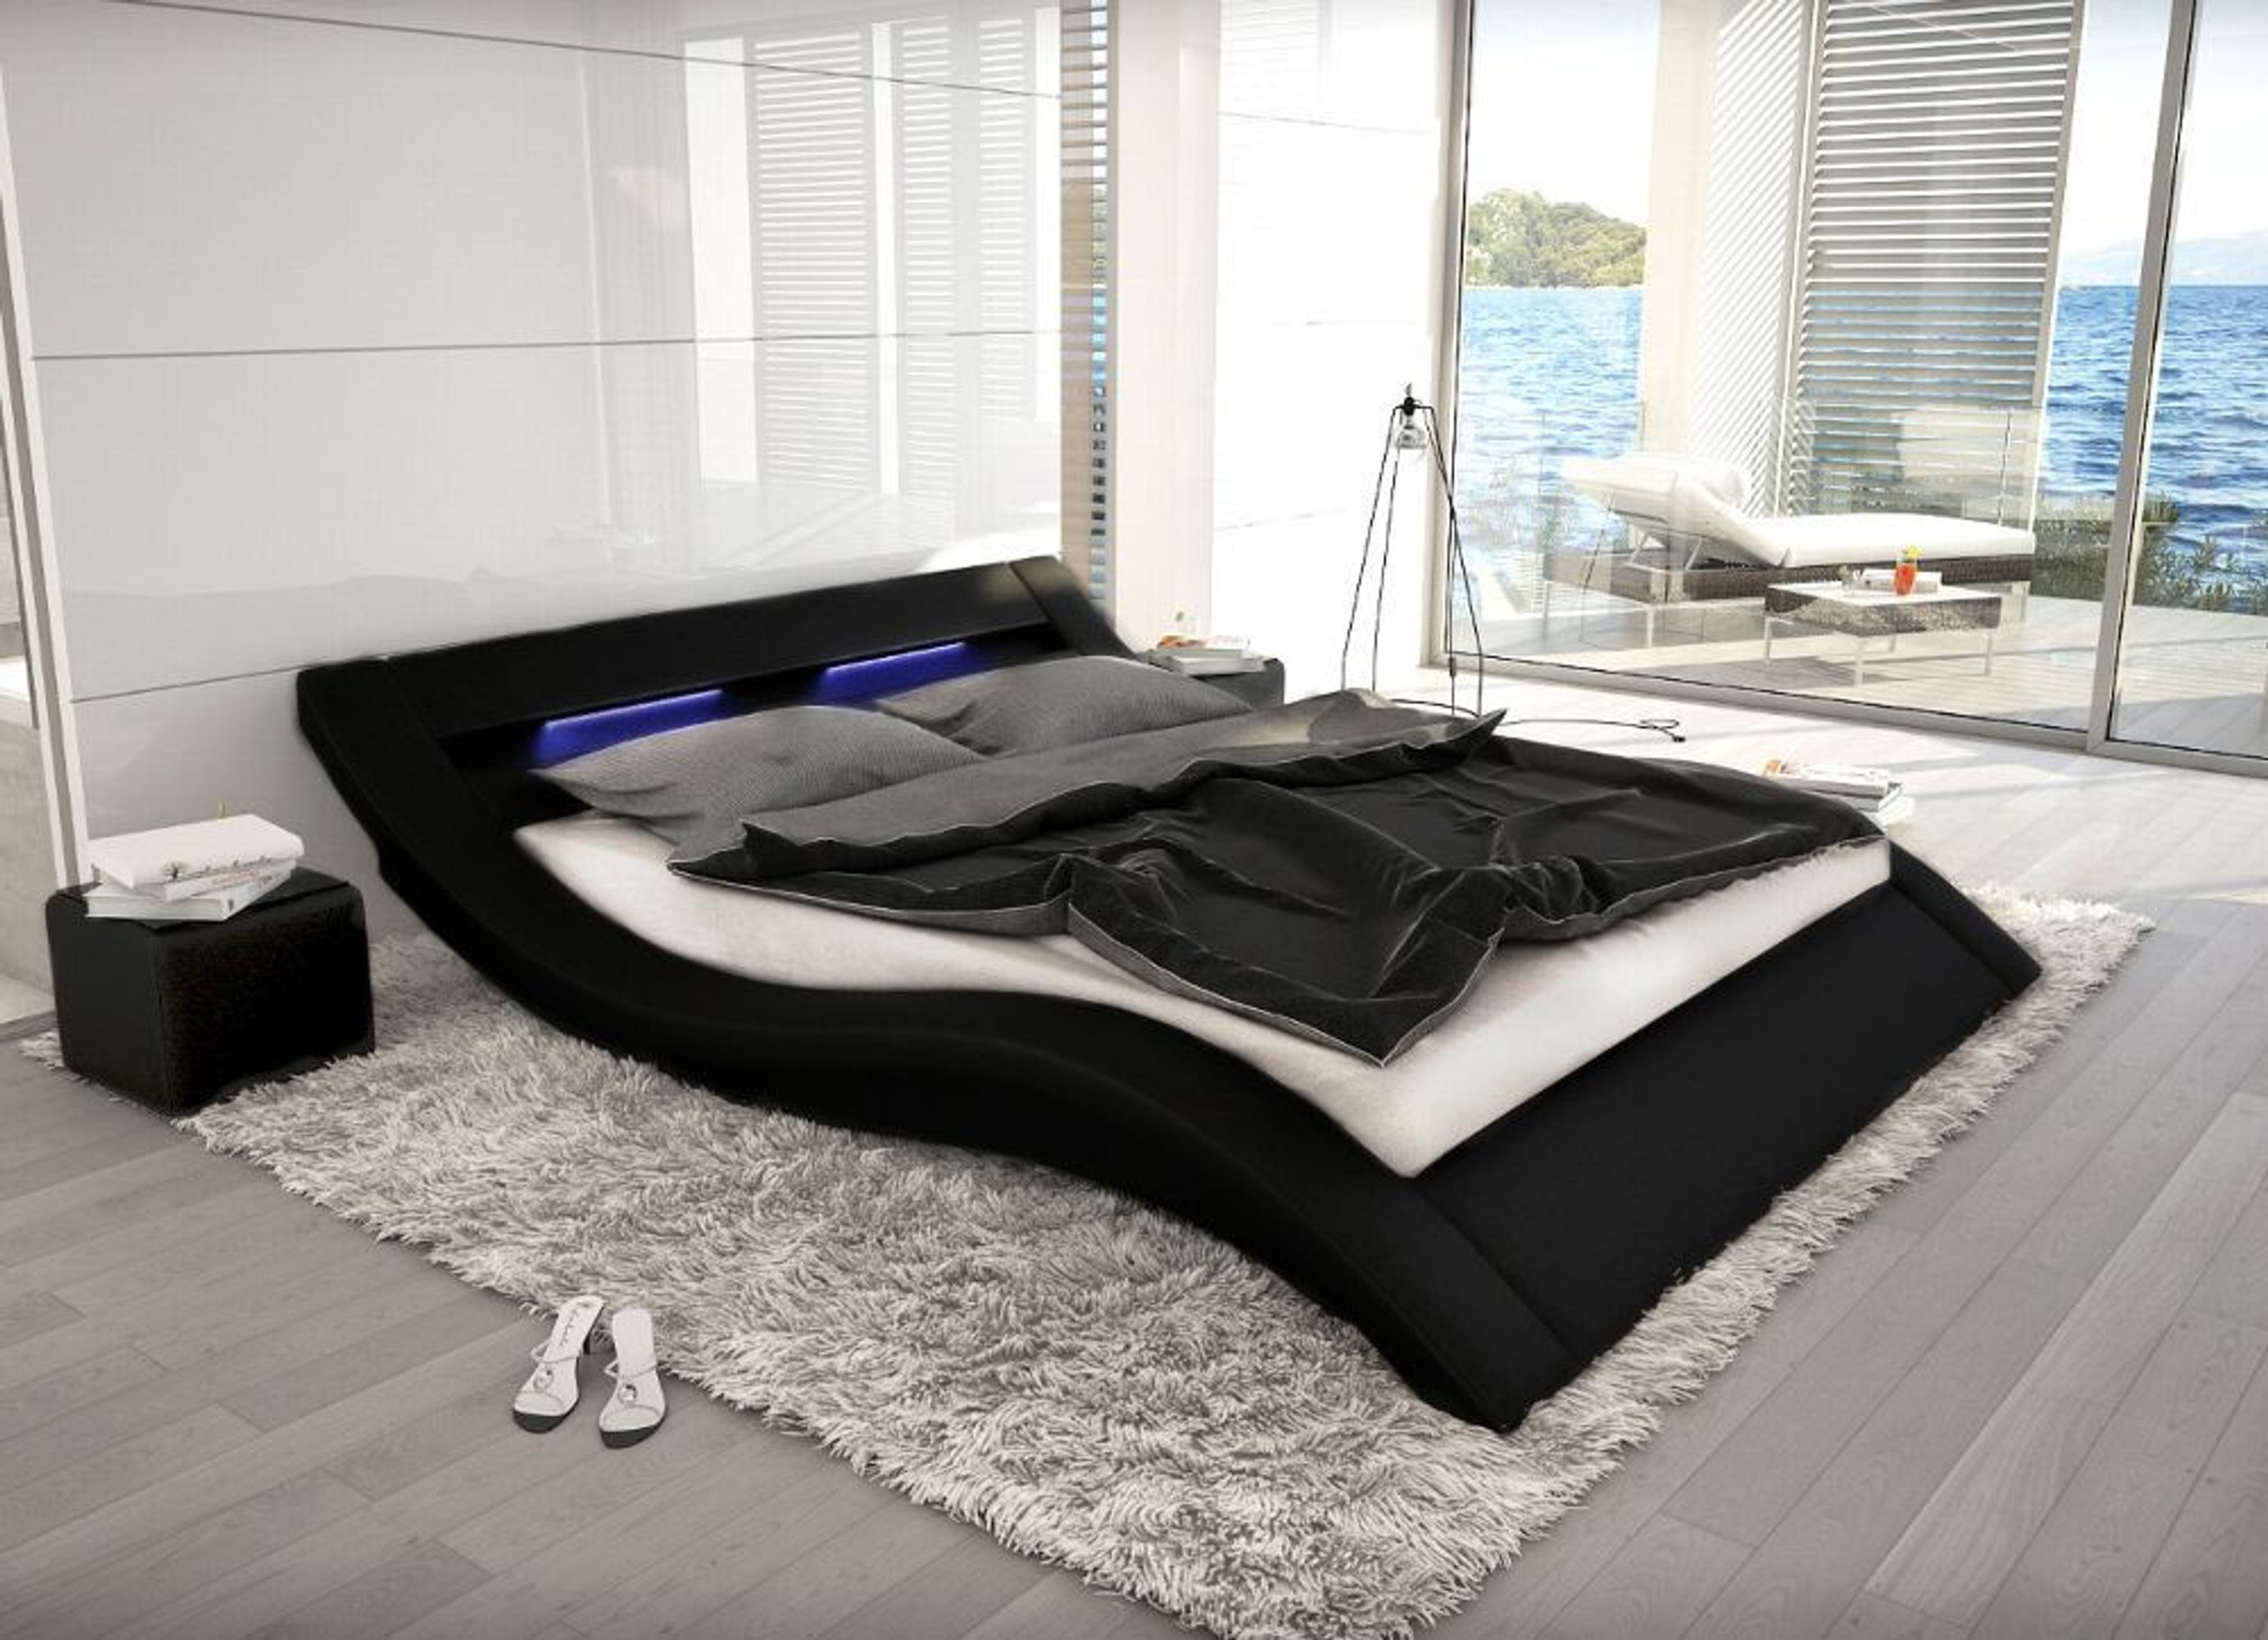 designer leder polsterbett lederbett wei oder schwarz gewelltes wellenf rmiges bett kaufen bei. Black Bedroom Furniture Sets. Home Design Ideas